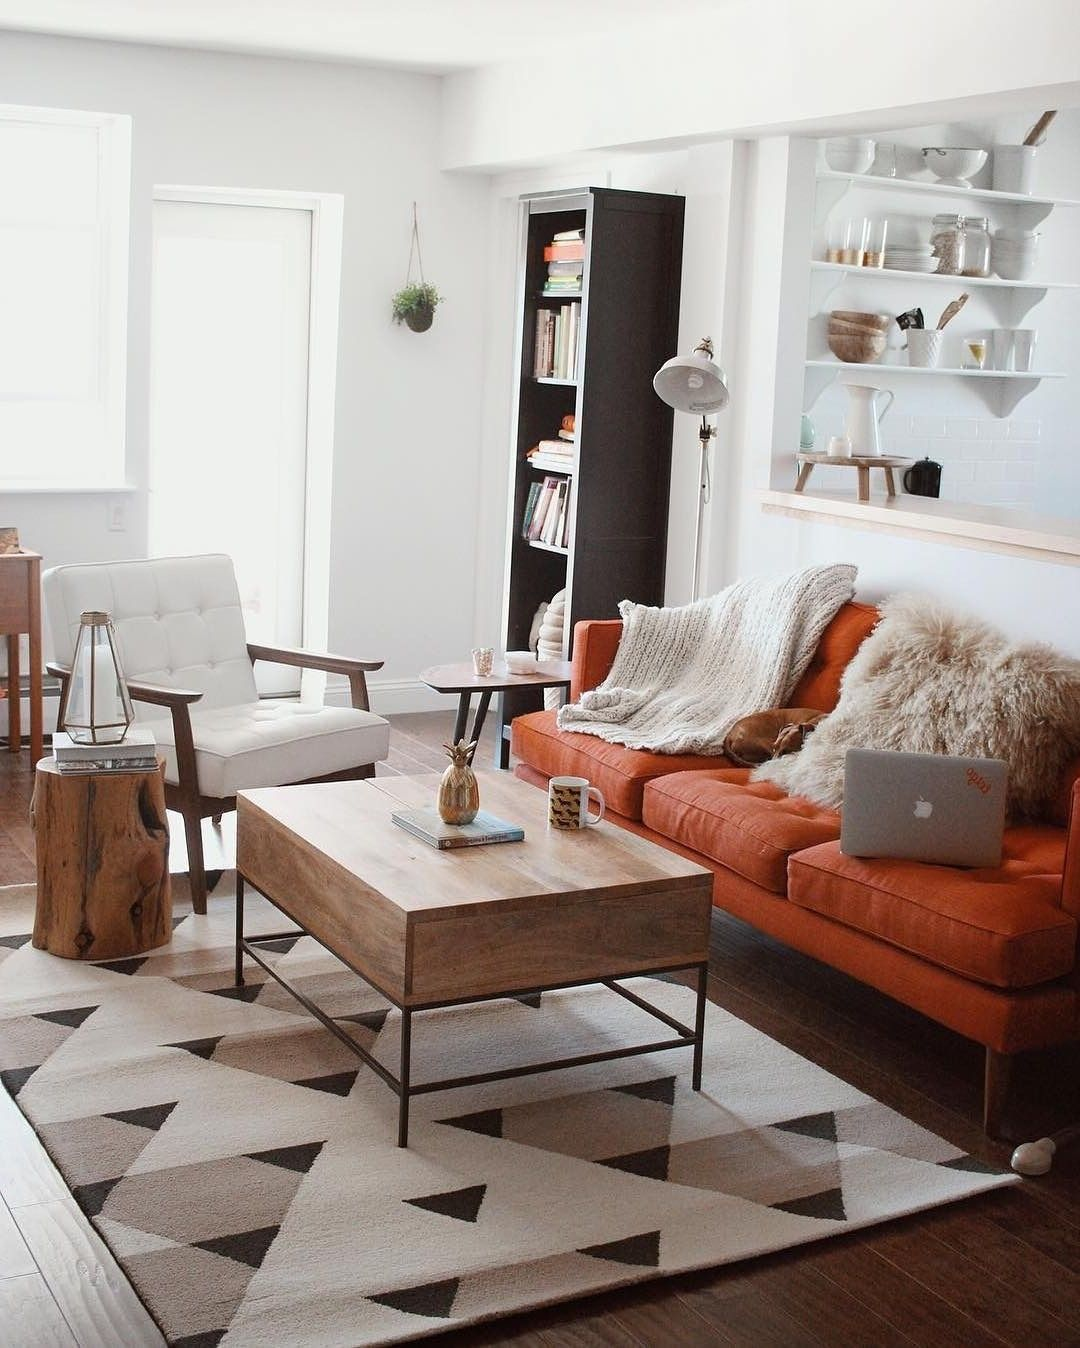 Explore Our List Of Popular Small Living Room Ideas And Tips